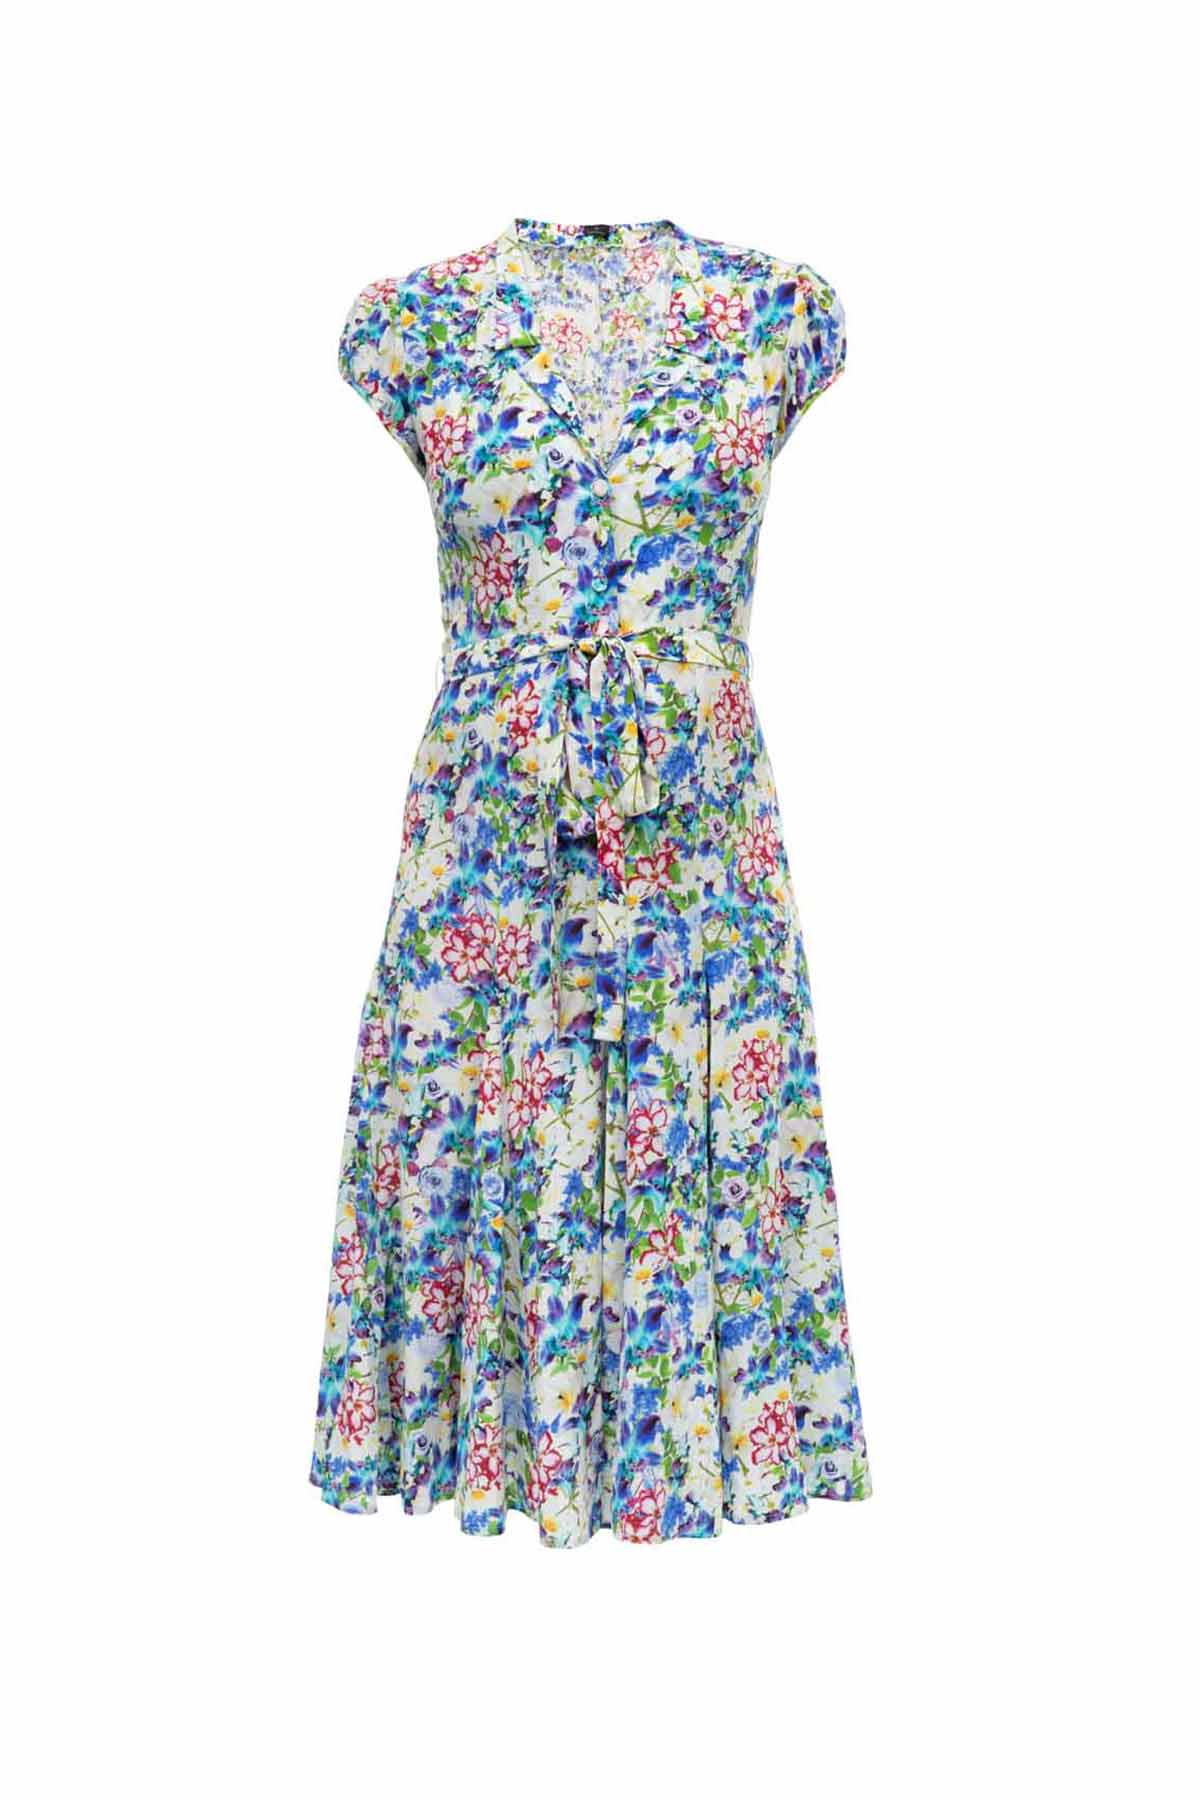 Silk Bugesha Dress - Multi Fleurs